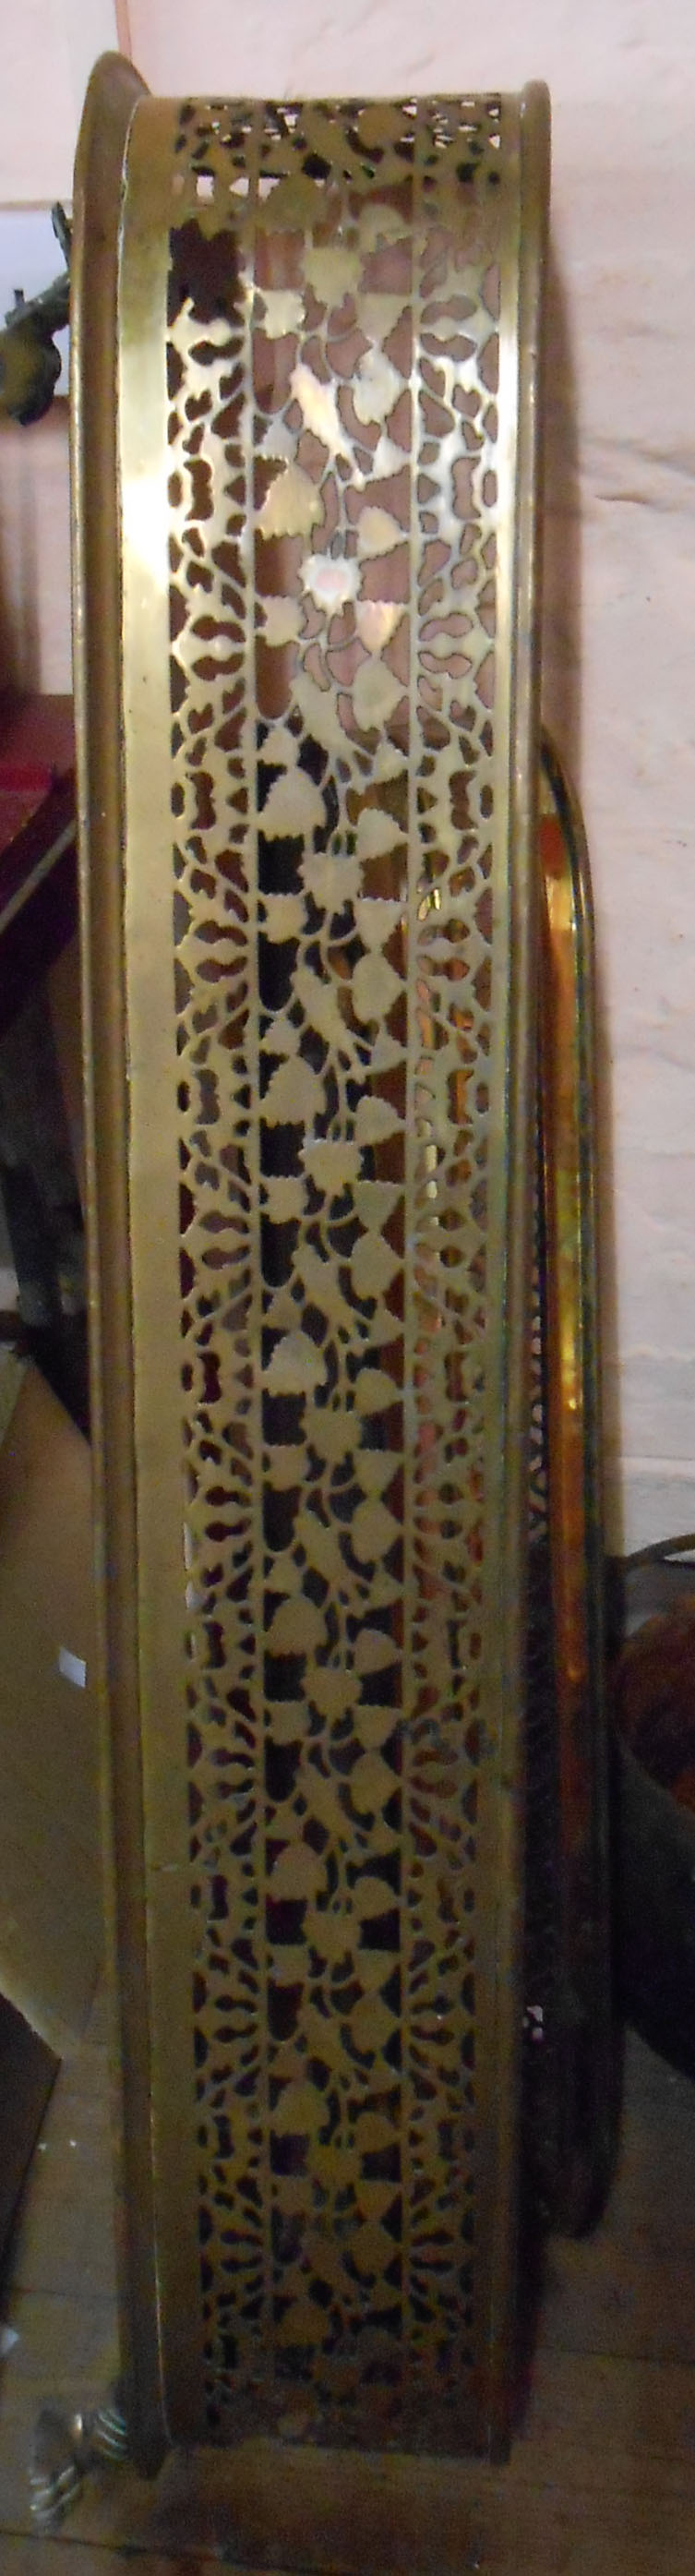 A late 19th Century brass fire kerb fender with pierced frieze decoration - sold with a smaller